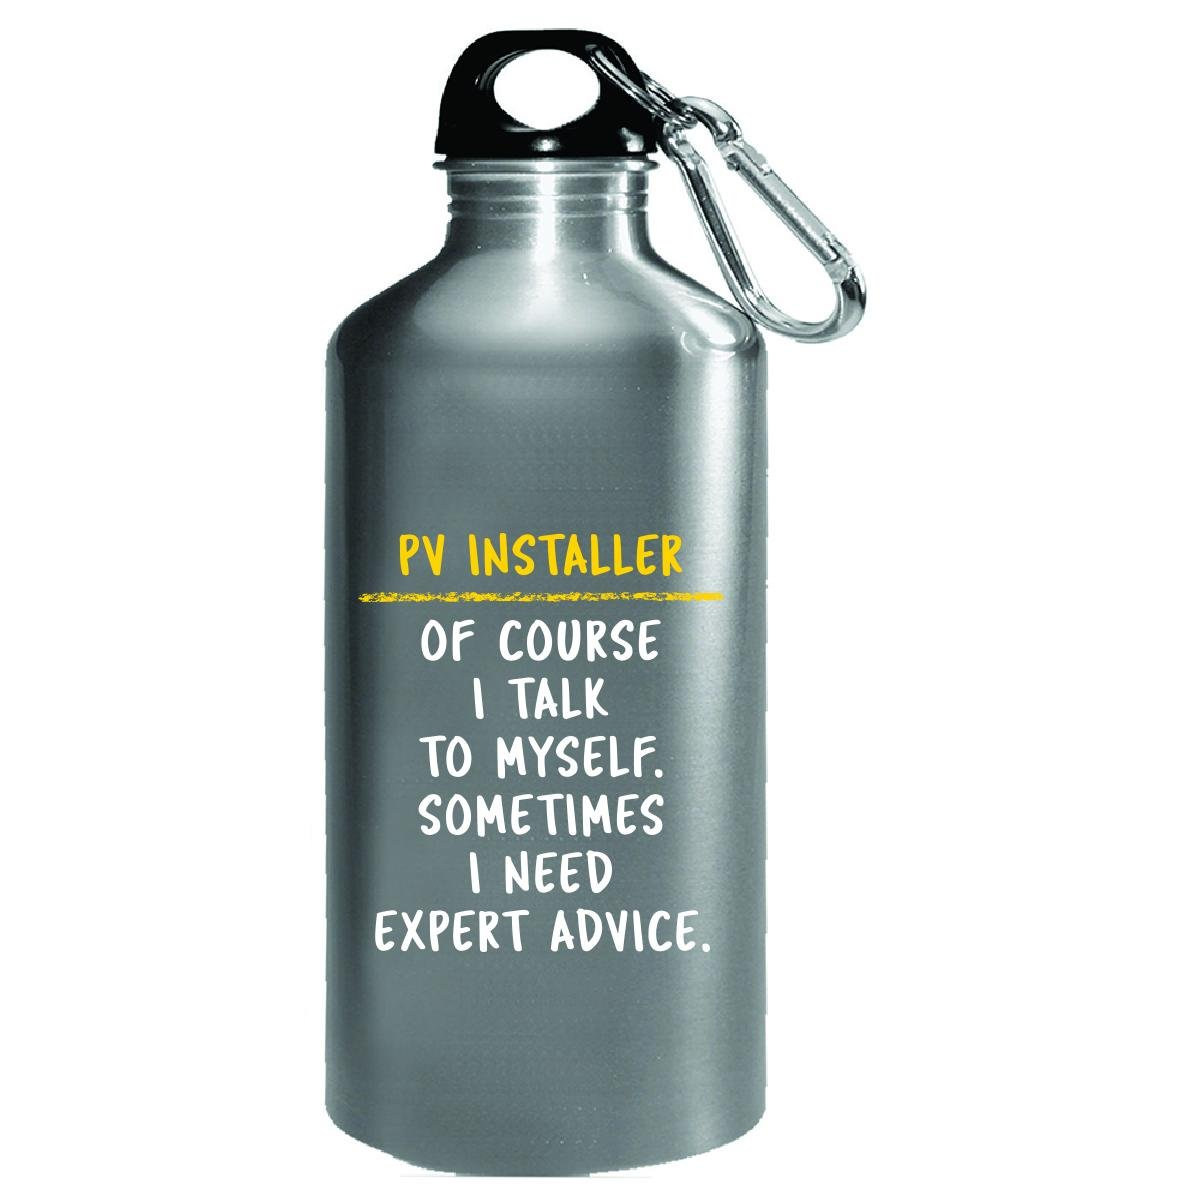 Pv Installer Expert Advice Sarcastic Funny Saying Solar Gift - Water Bottle